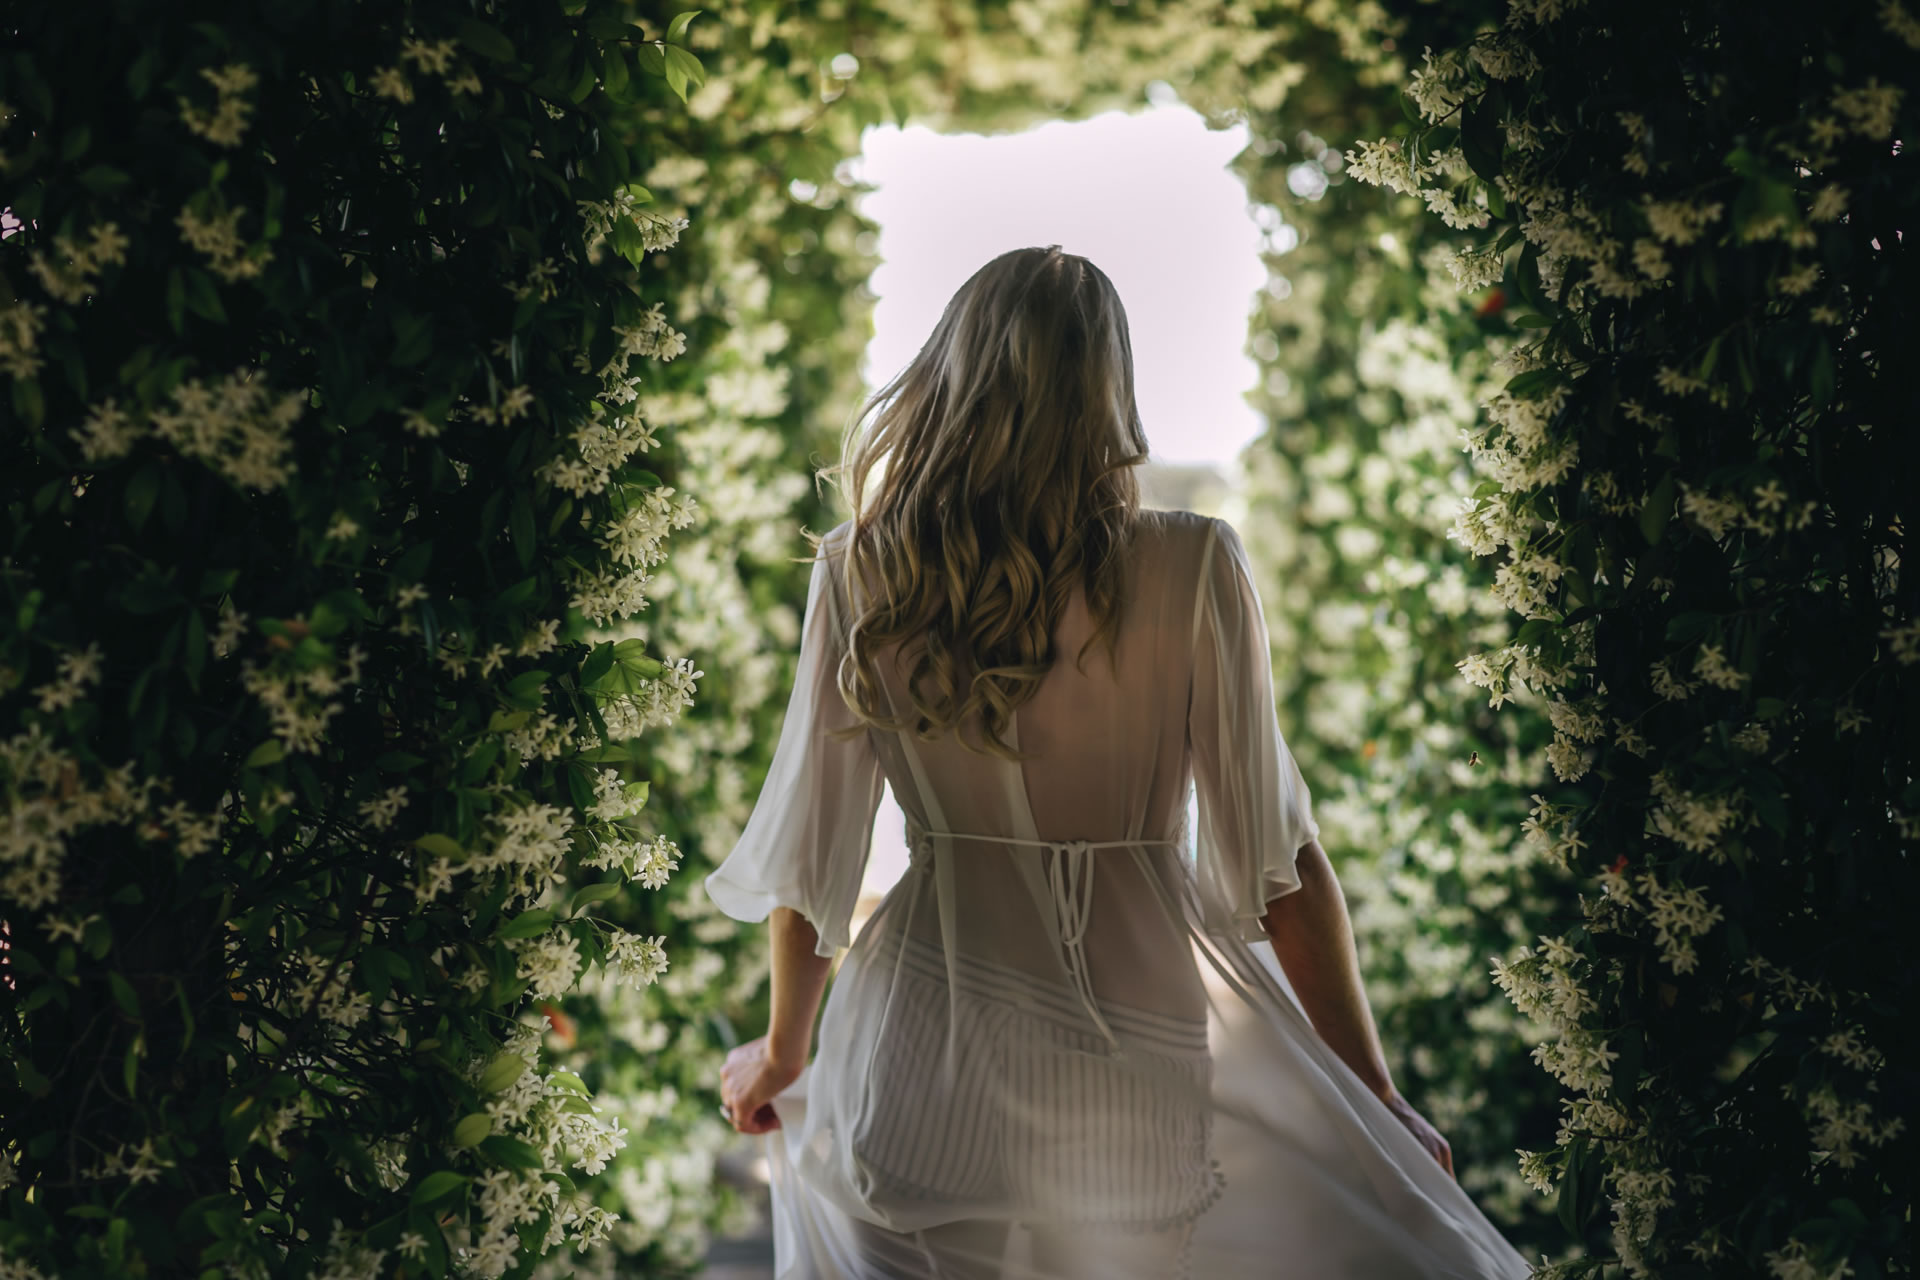 Hedge - 20 :: Exciting wedding in the countryside of Siena :: Luxury wedding photography - 19 :: Hedge - 20